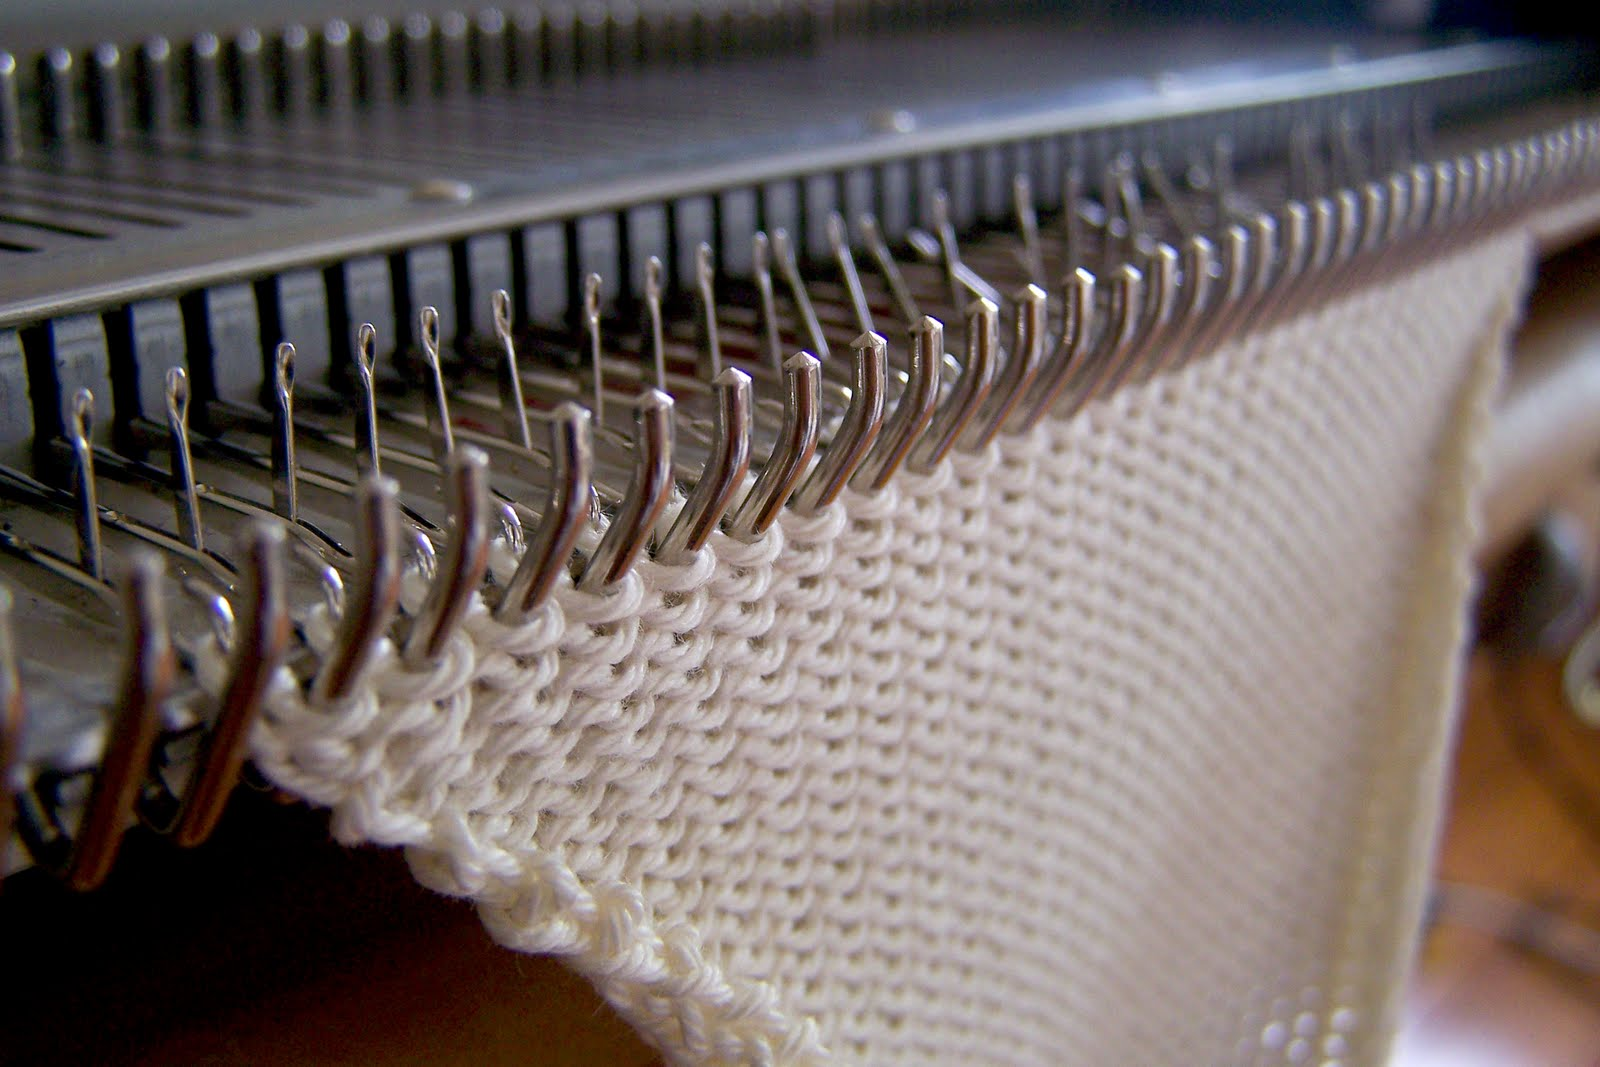 Knitting Machines : Beauty in the mundane knitmaster machine